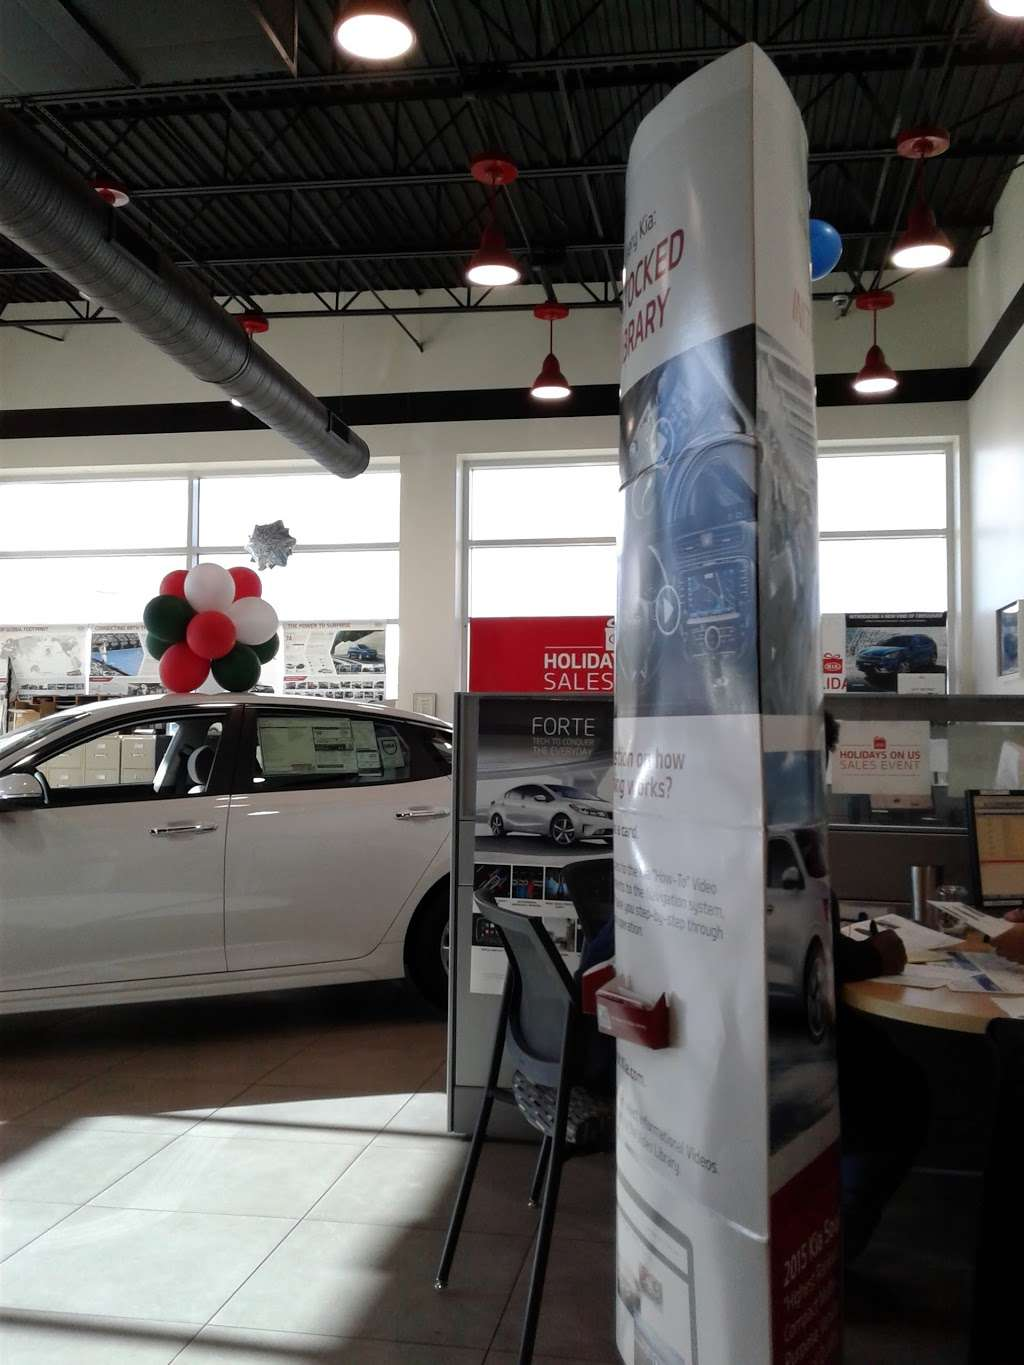 Kia of Bowie - car repair  | Photo 1 of 10 | Address: 16620 Governor Bridge Rd, Bowie, MD 20716, USA | Phone: (301) 820-7500